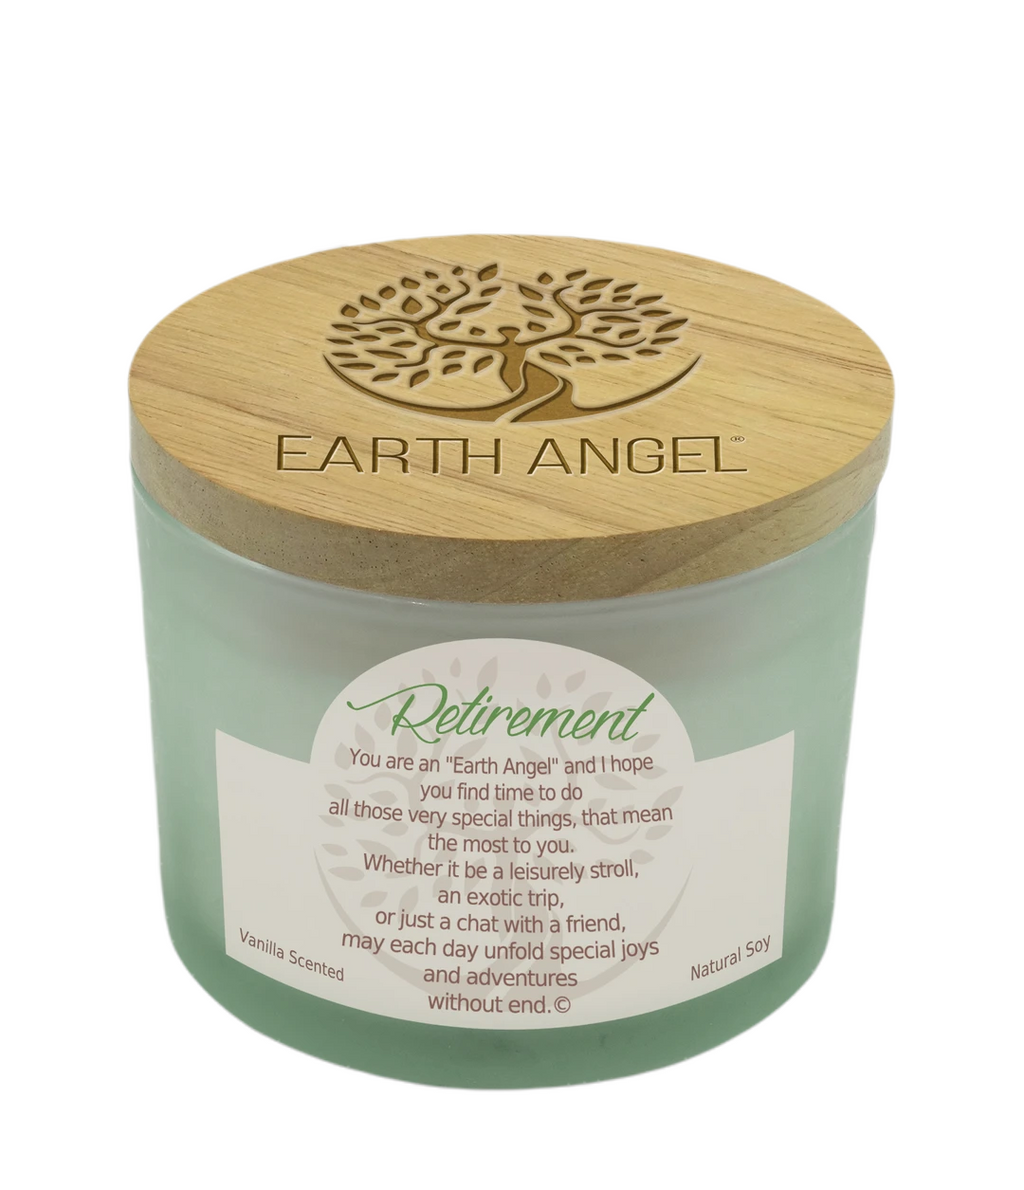 Earth Angel Natural Soy Candle 12 Ounce Retirement